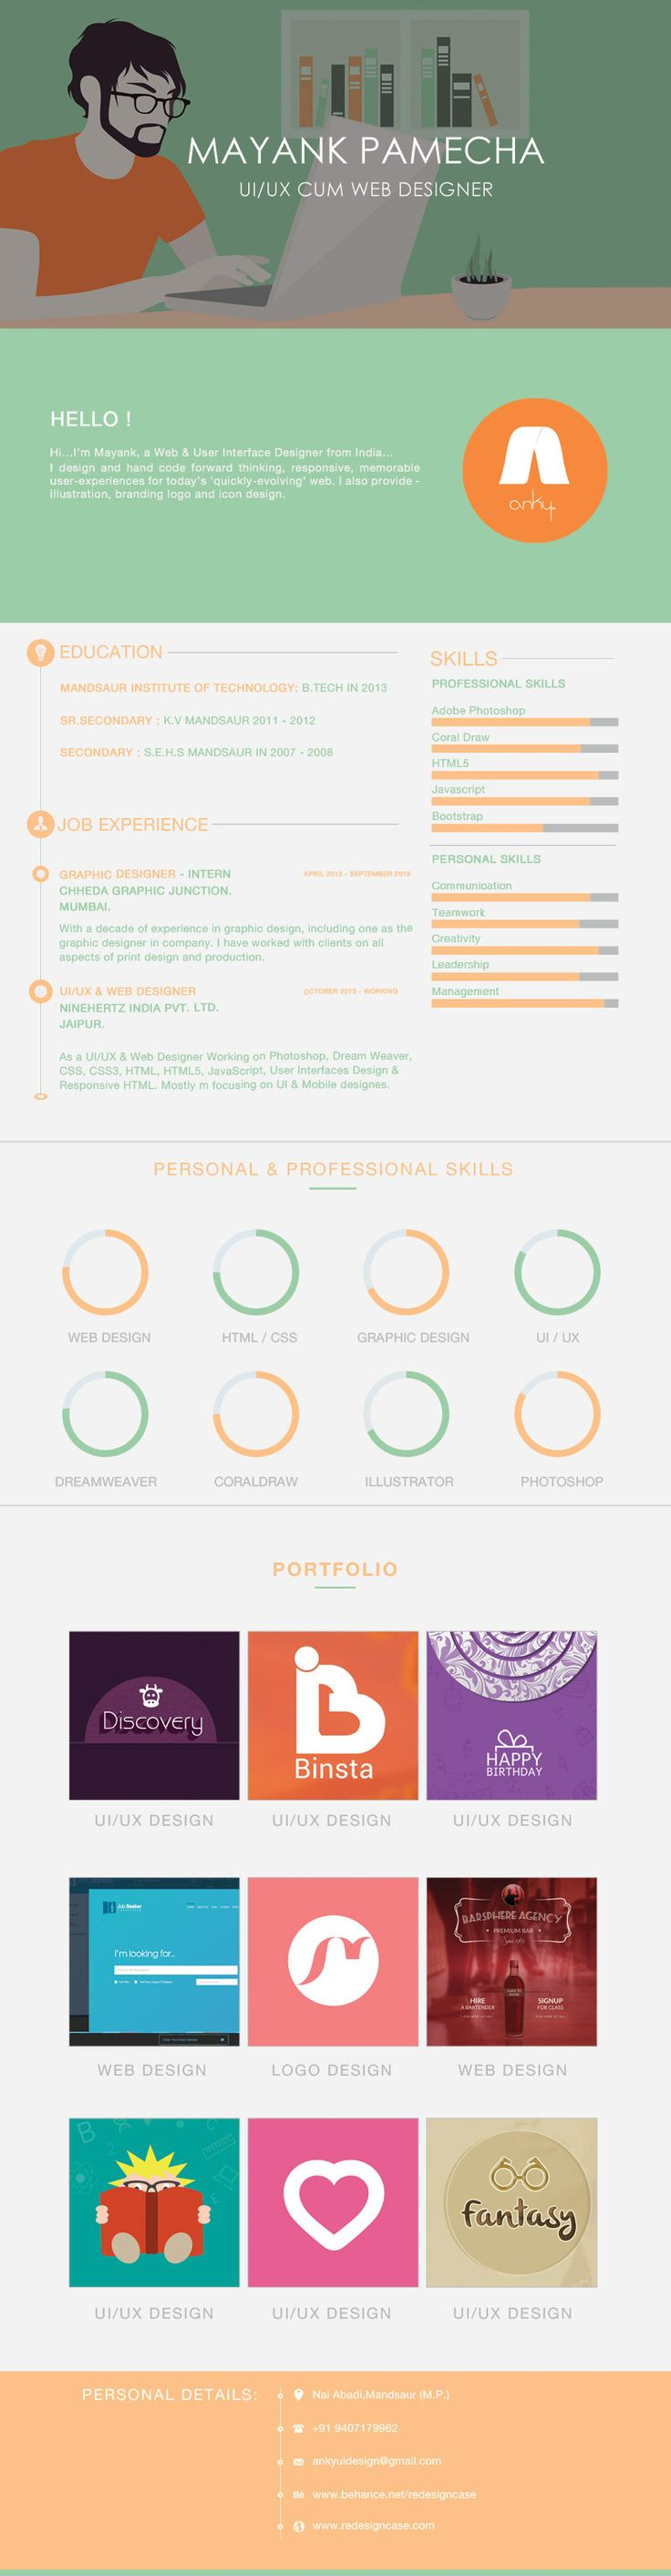 10 best My Portfolio #UX #UI #Freelance #Design images on Pinterest ...